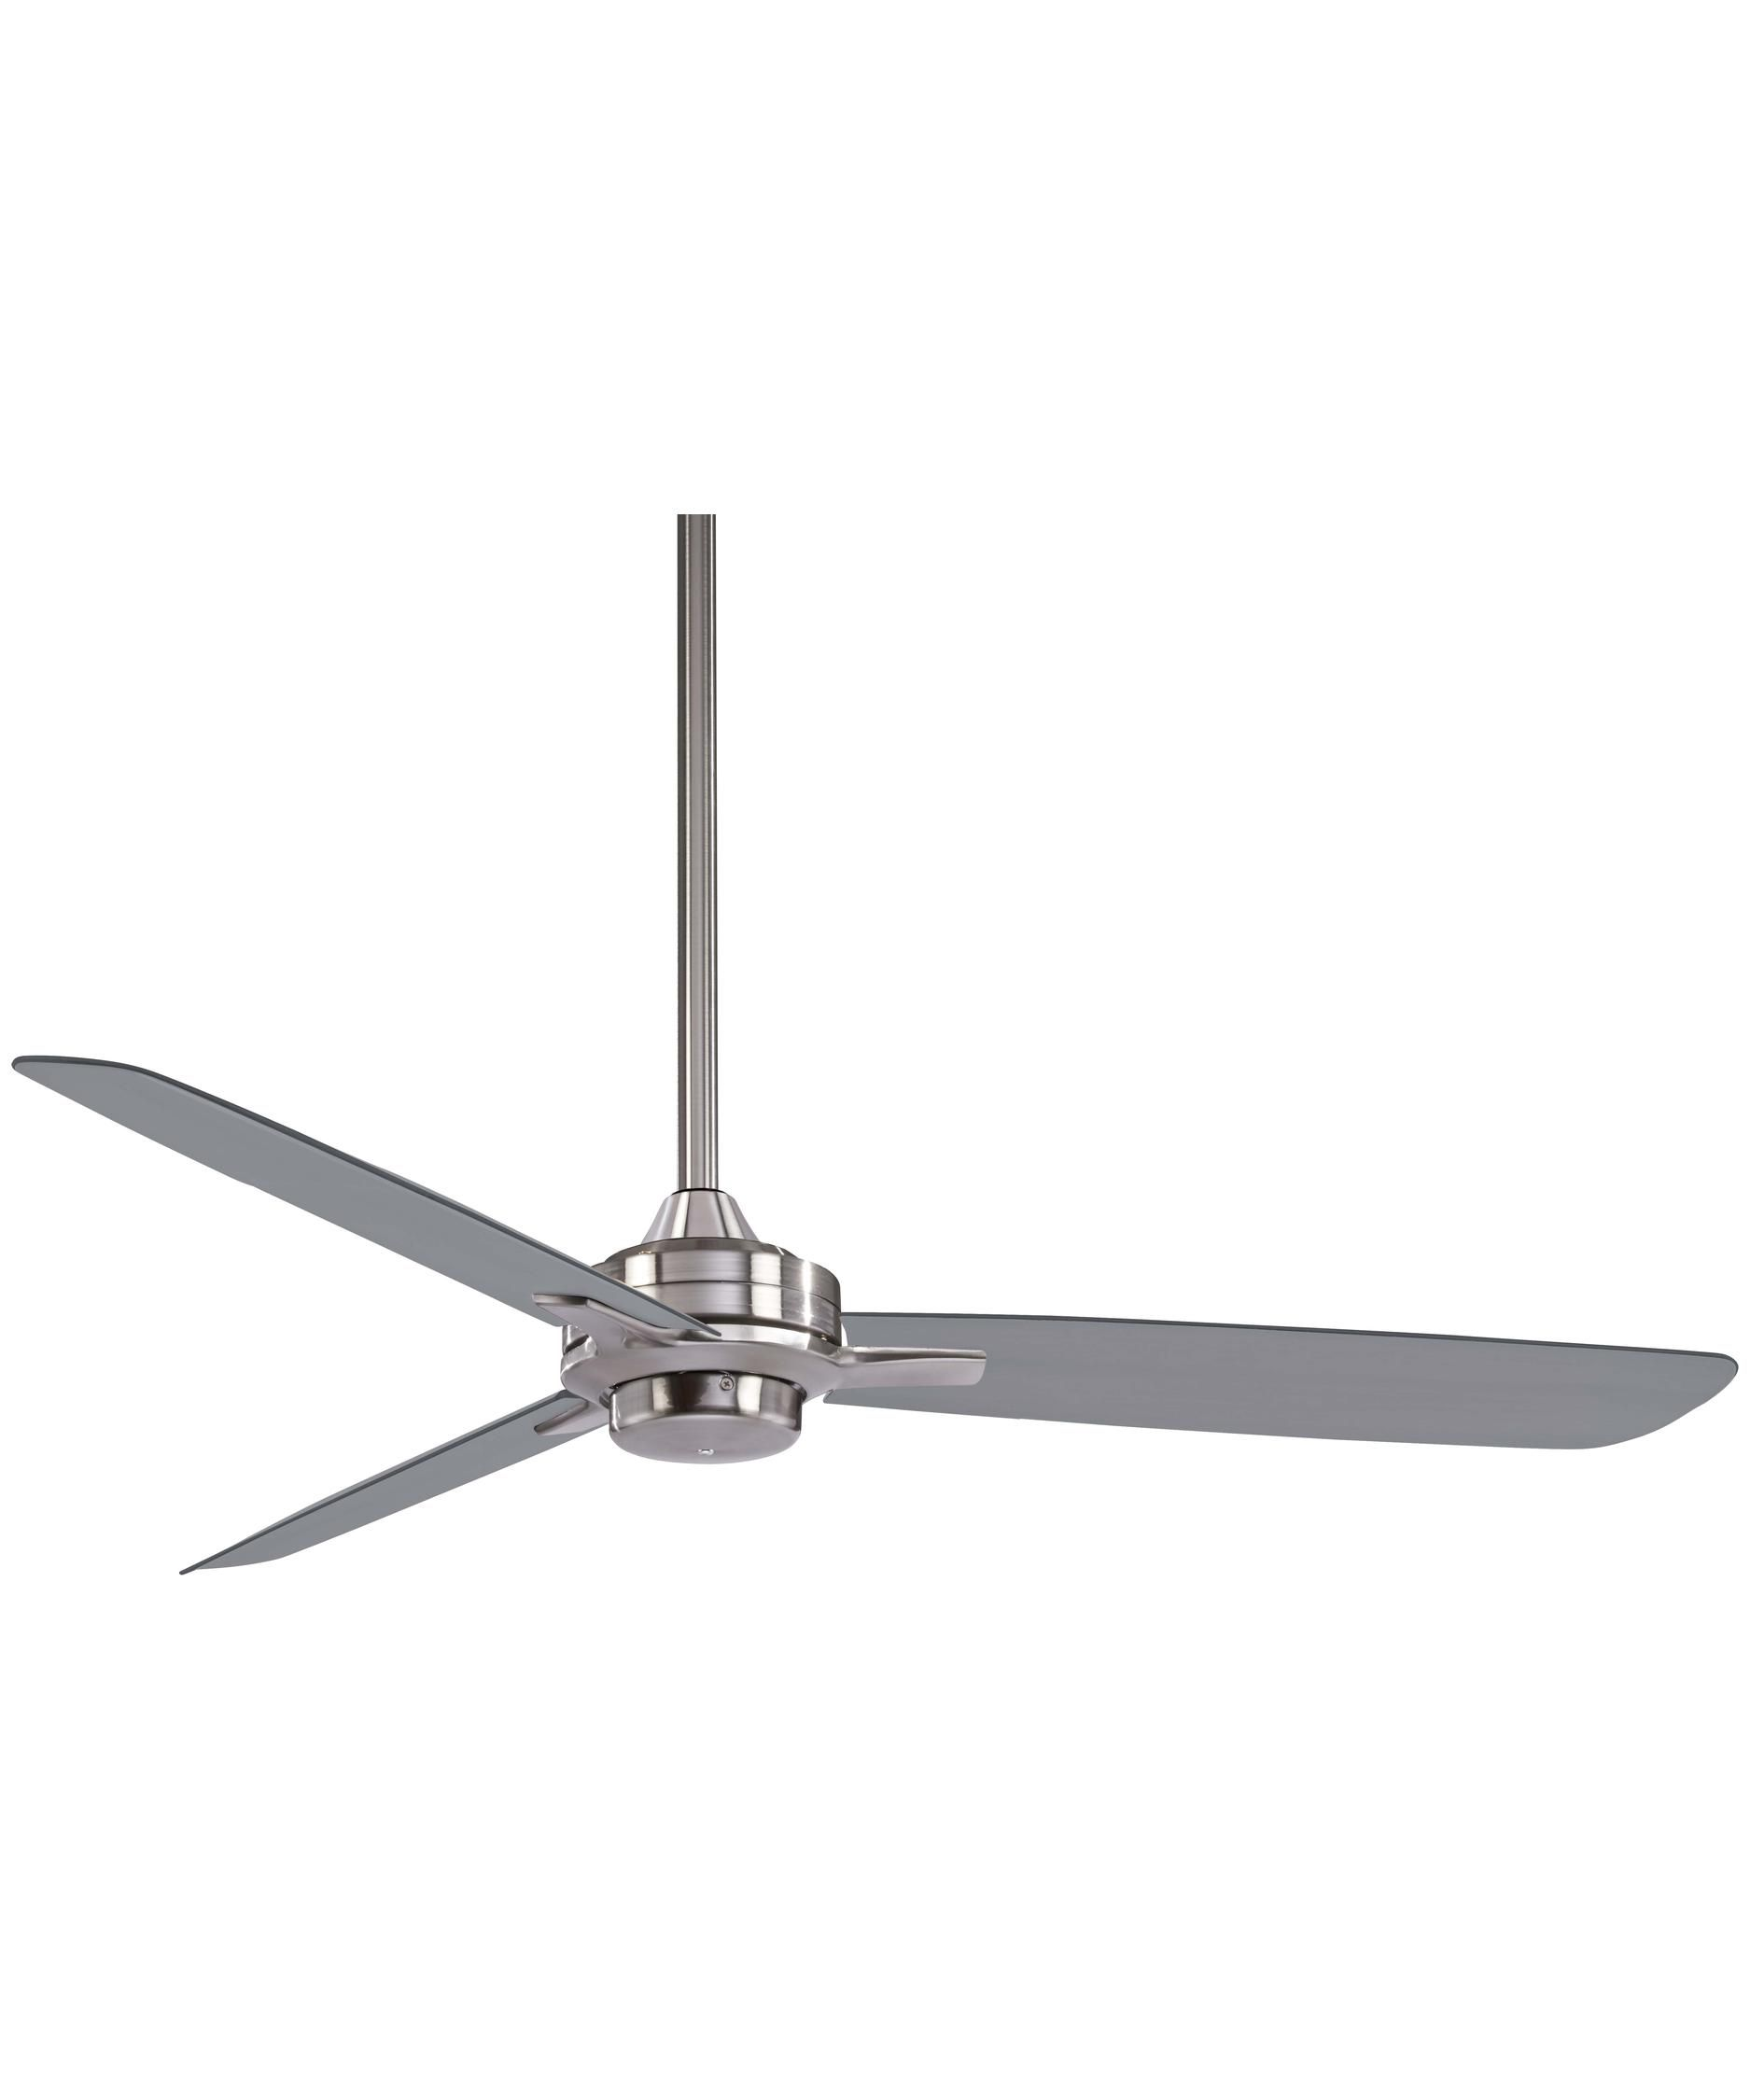 Minka aire f727 rudolph 52 inch ceiling fan capitol lighting 1 minka aire f727 rudolph 52 inch ceiling fan capitol lighting 1 800lighting mozeypictures Gallery